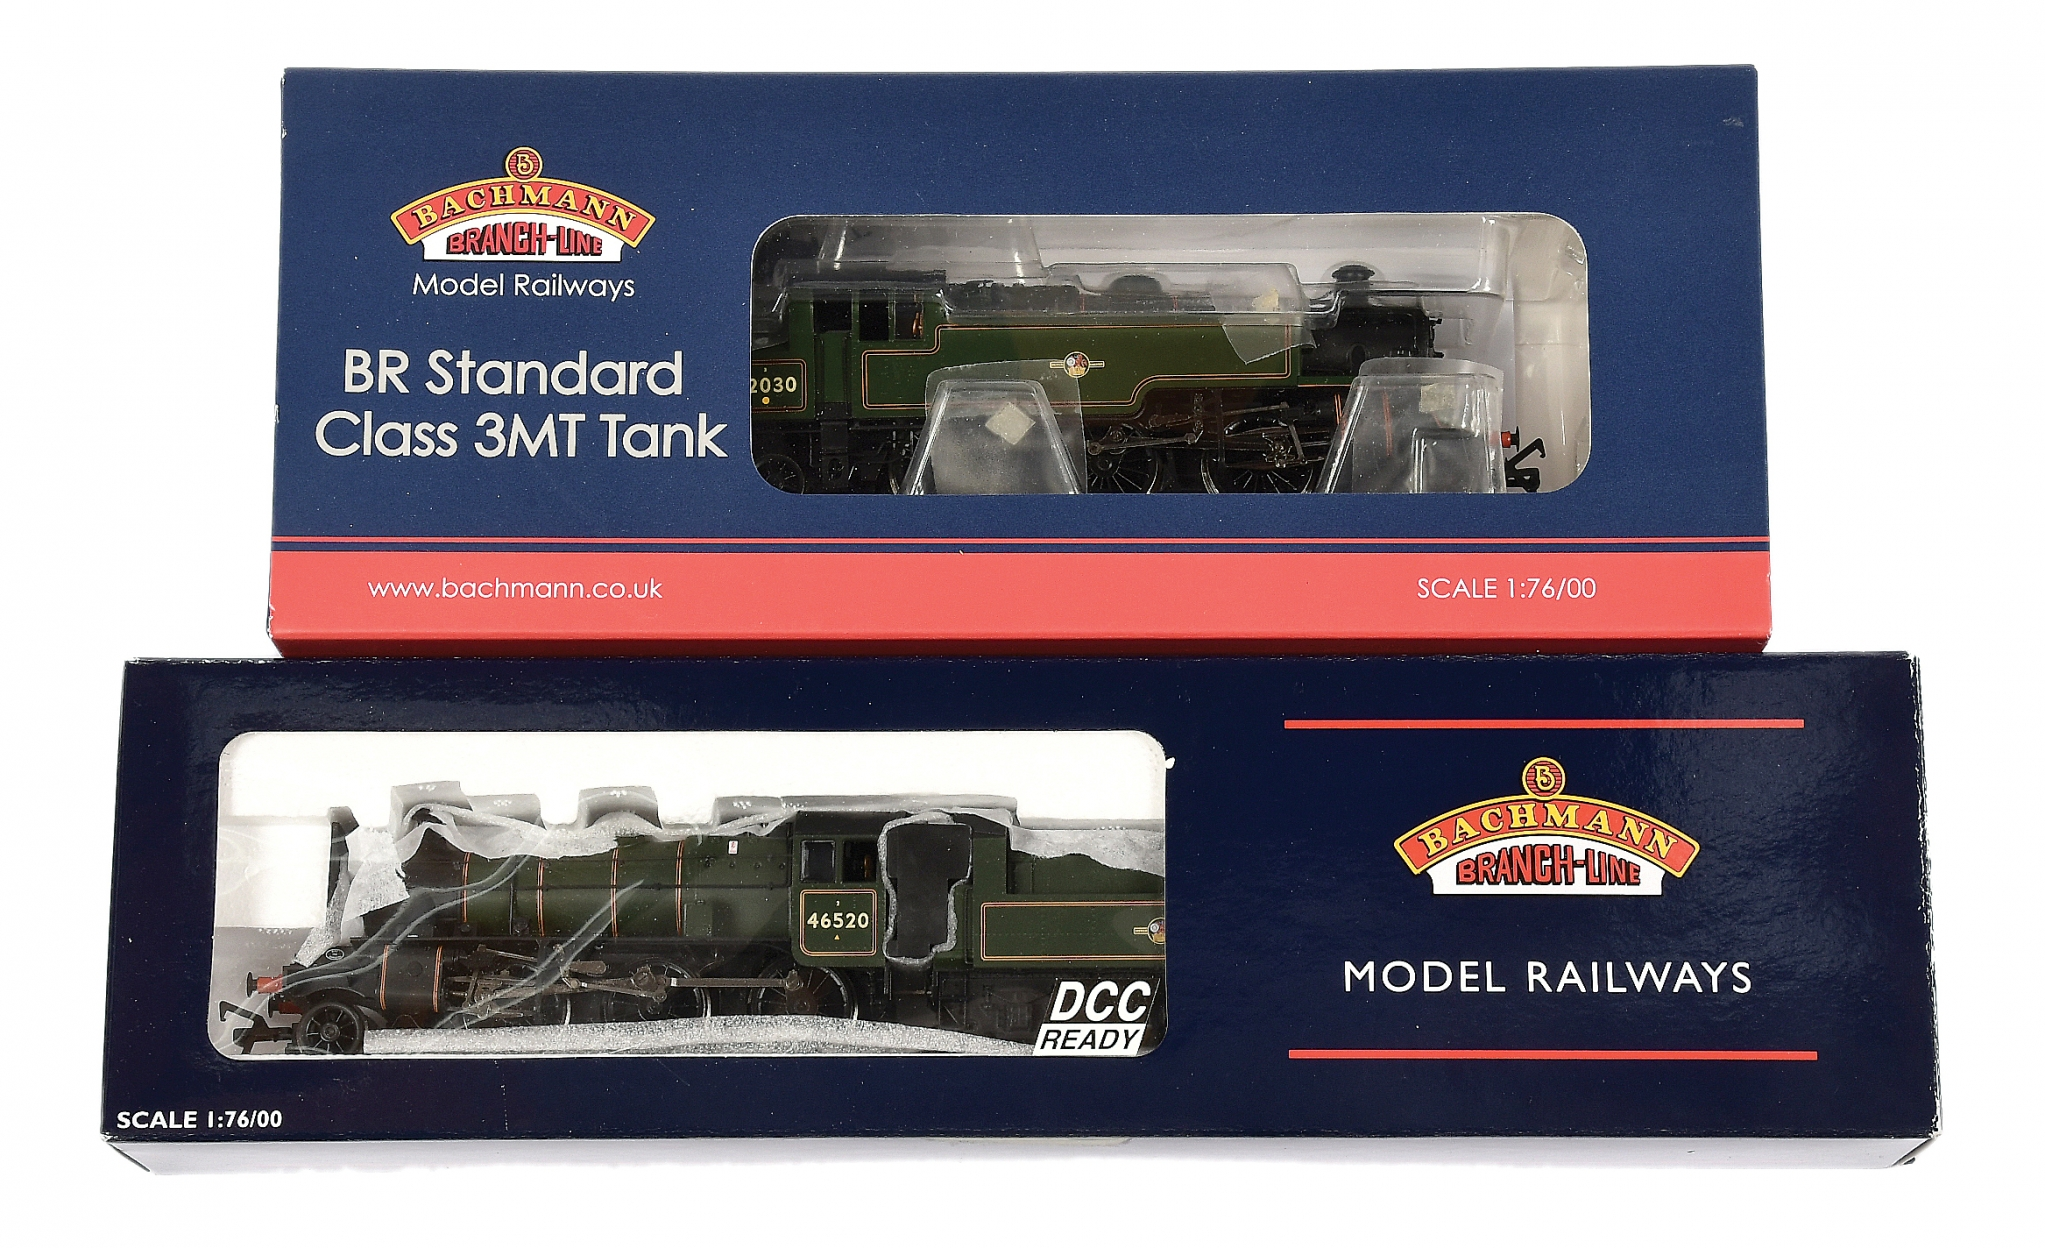 Bachmann OO Gauge BR green Steam Locos comprising 31-976A 2-6-2